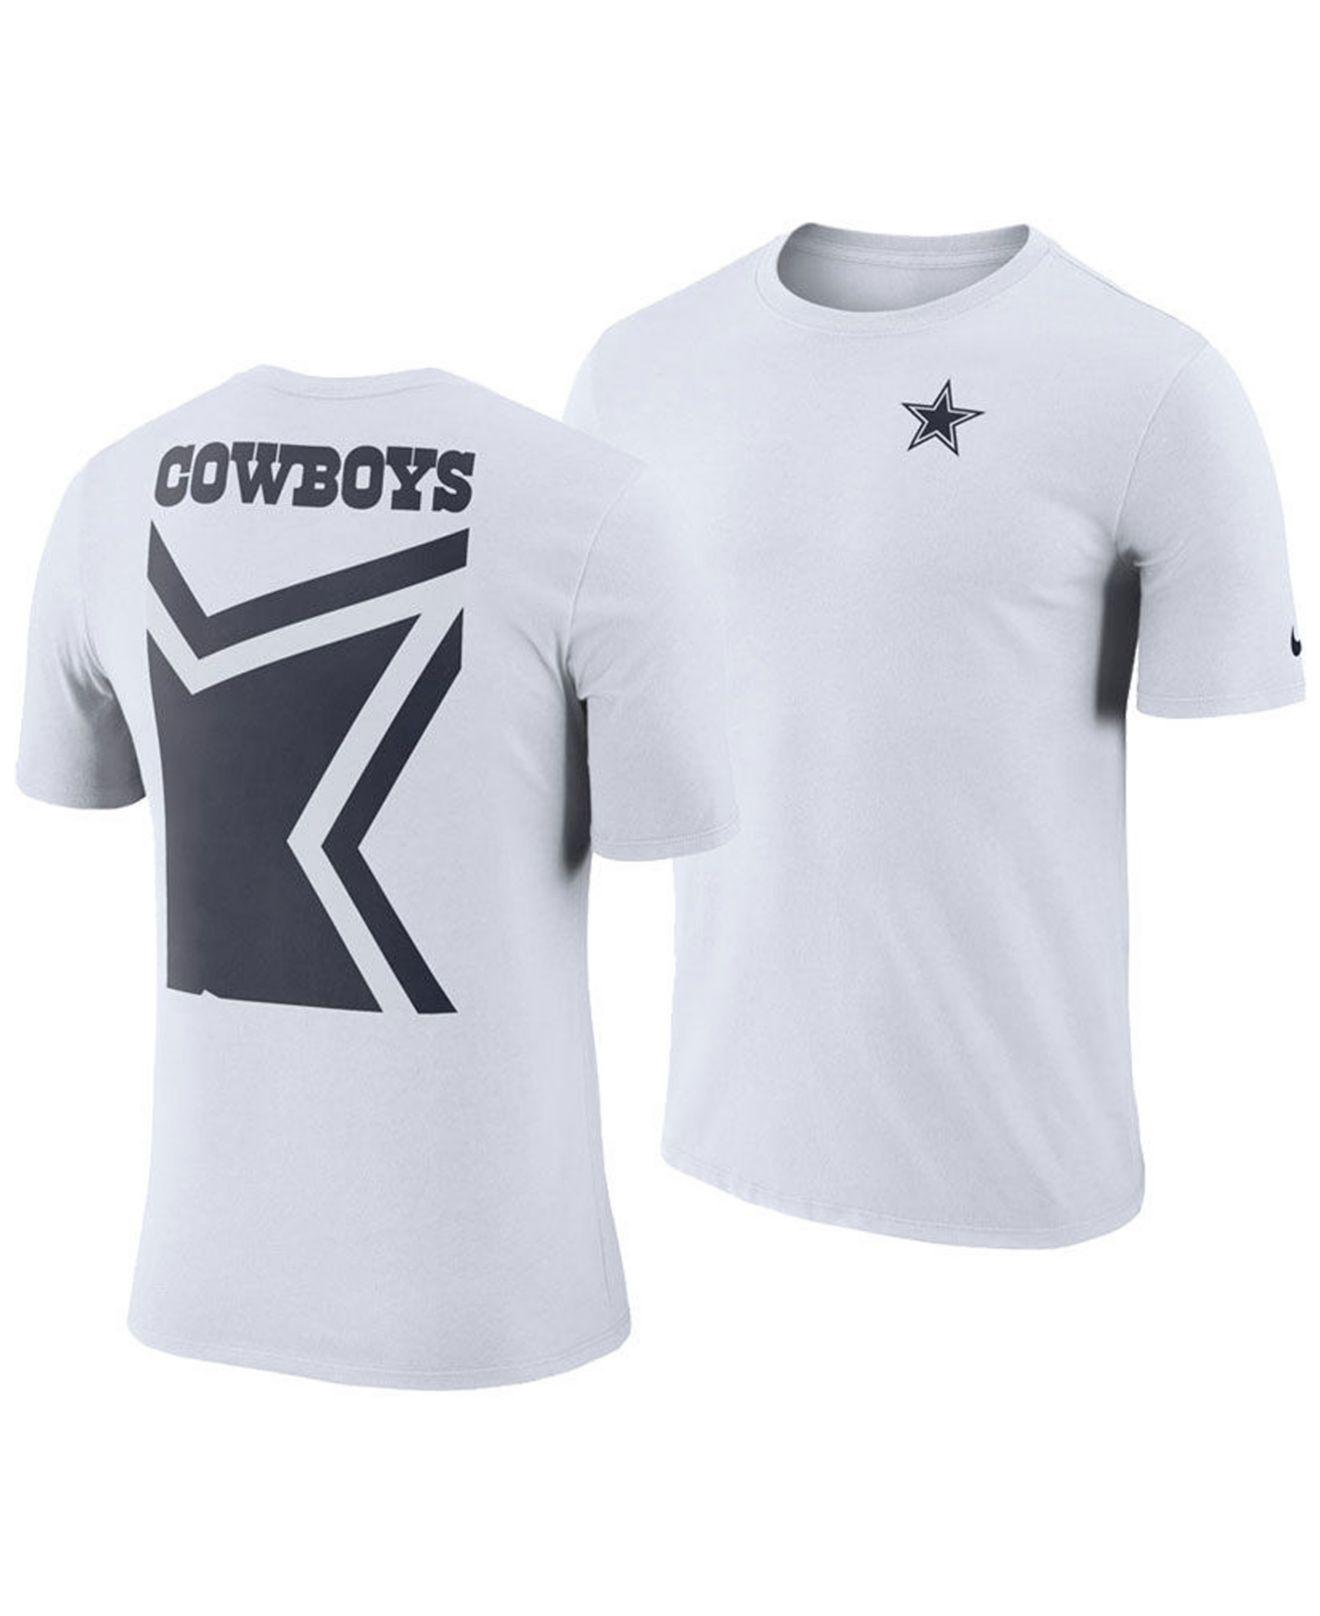 70c78320 Nike Dallas Cowboys Crew Champ T-shirt in White for Men - Lyst